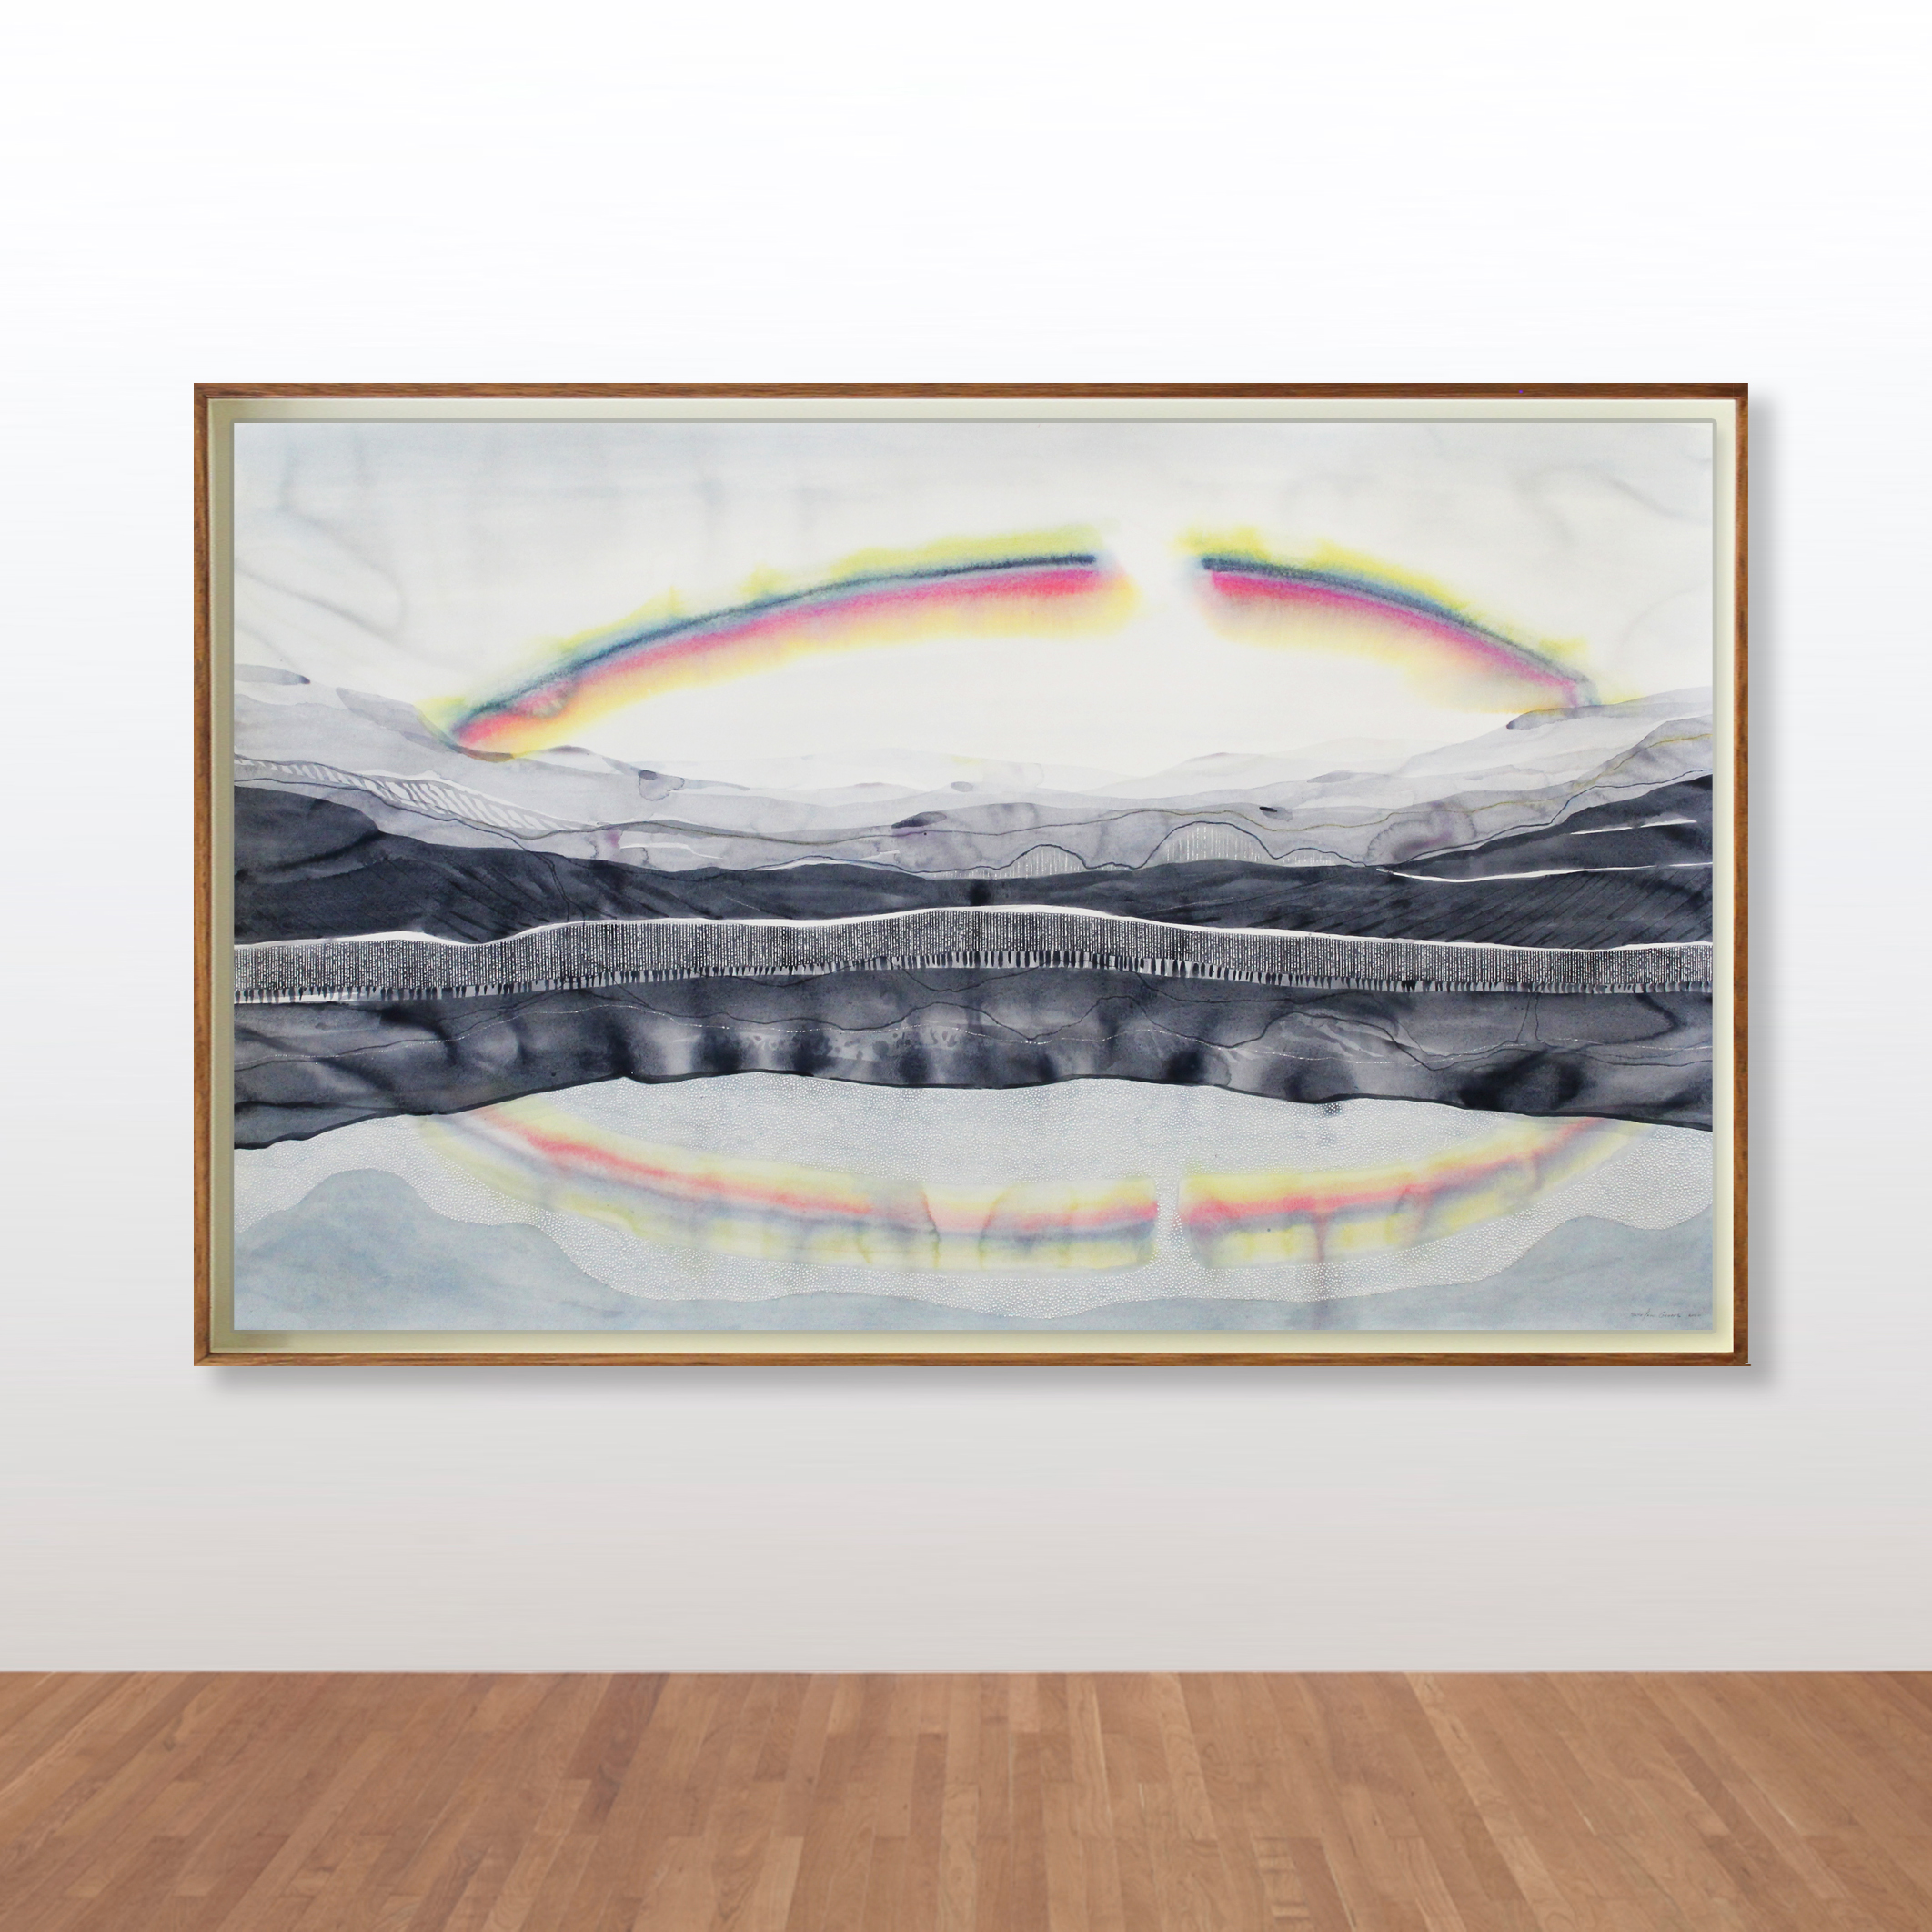 Stefan Gevers_Watercolours_rainbow frame